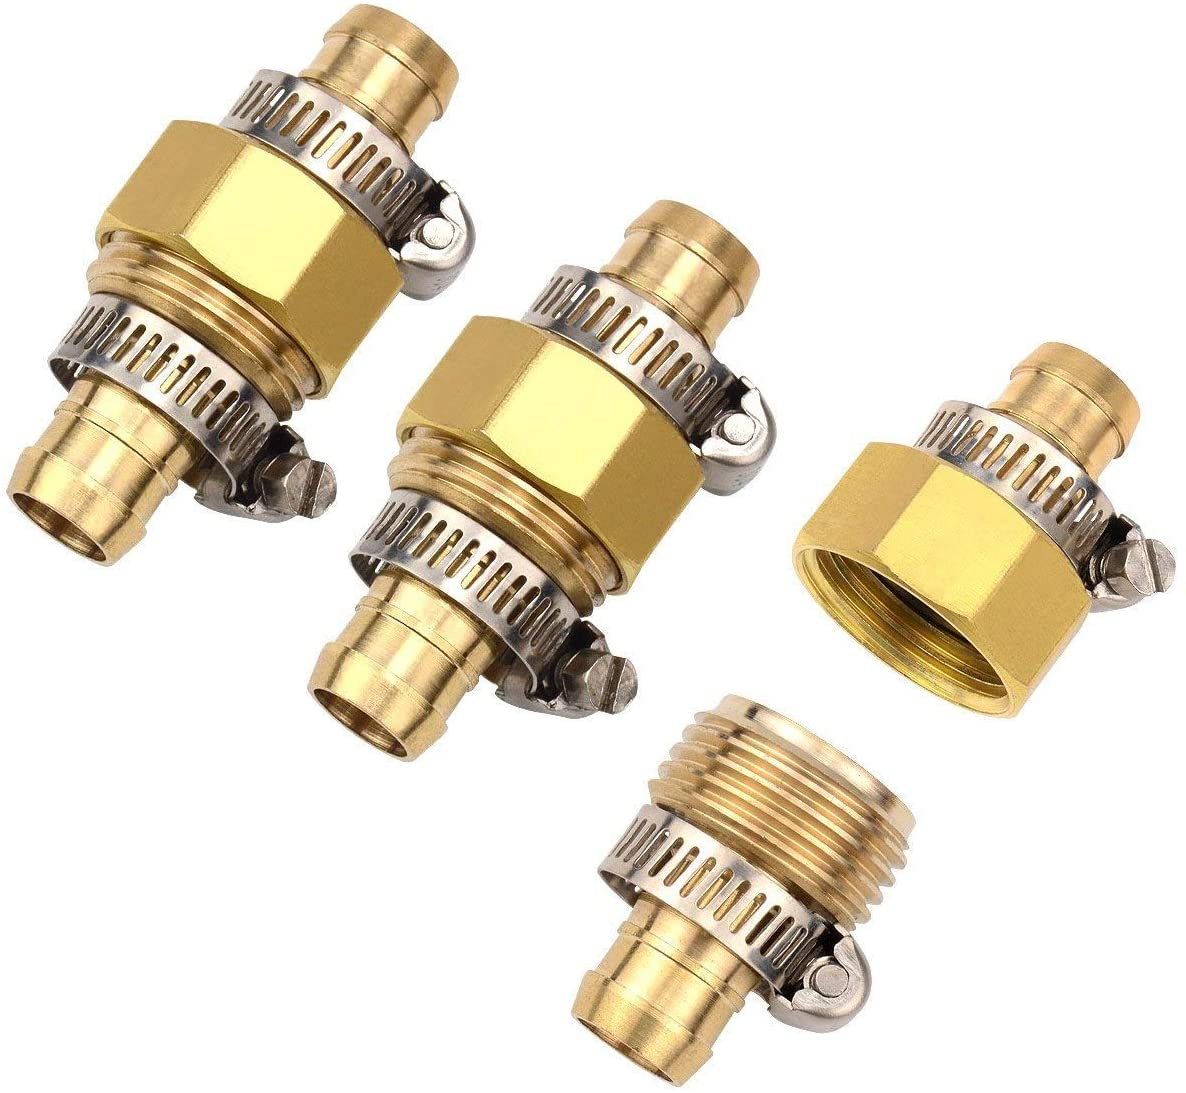 3Sets Brass Garden Hose Mender End Repair Male Female Connector with Stainless Clamp